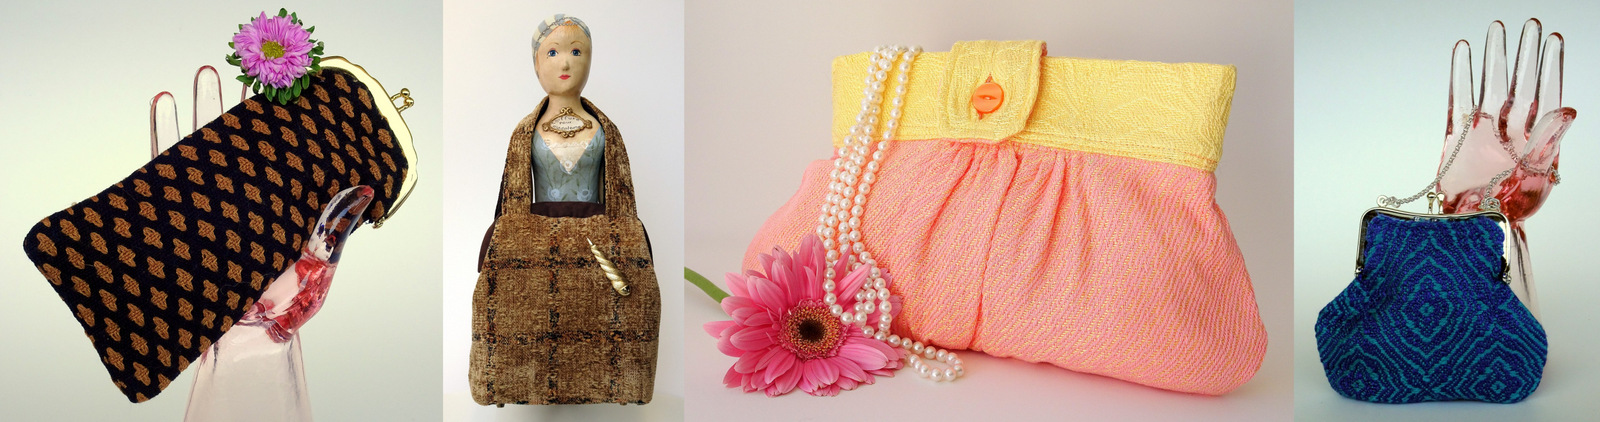 Paula Bowers, Handwoven Bags & Accessories.JPG